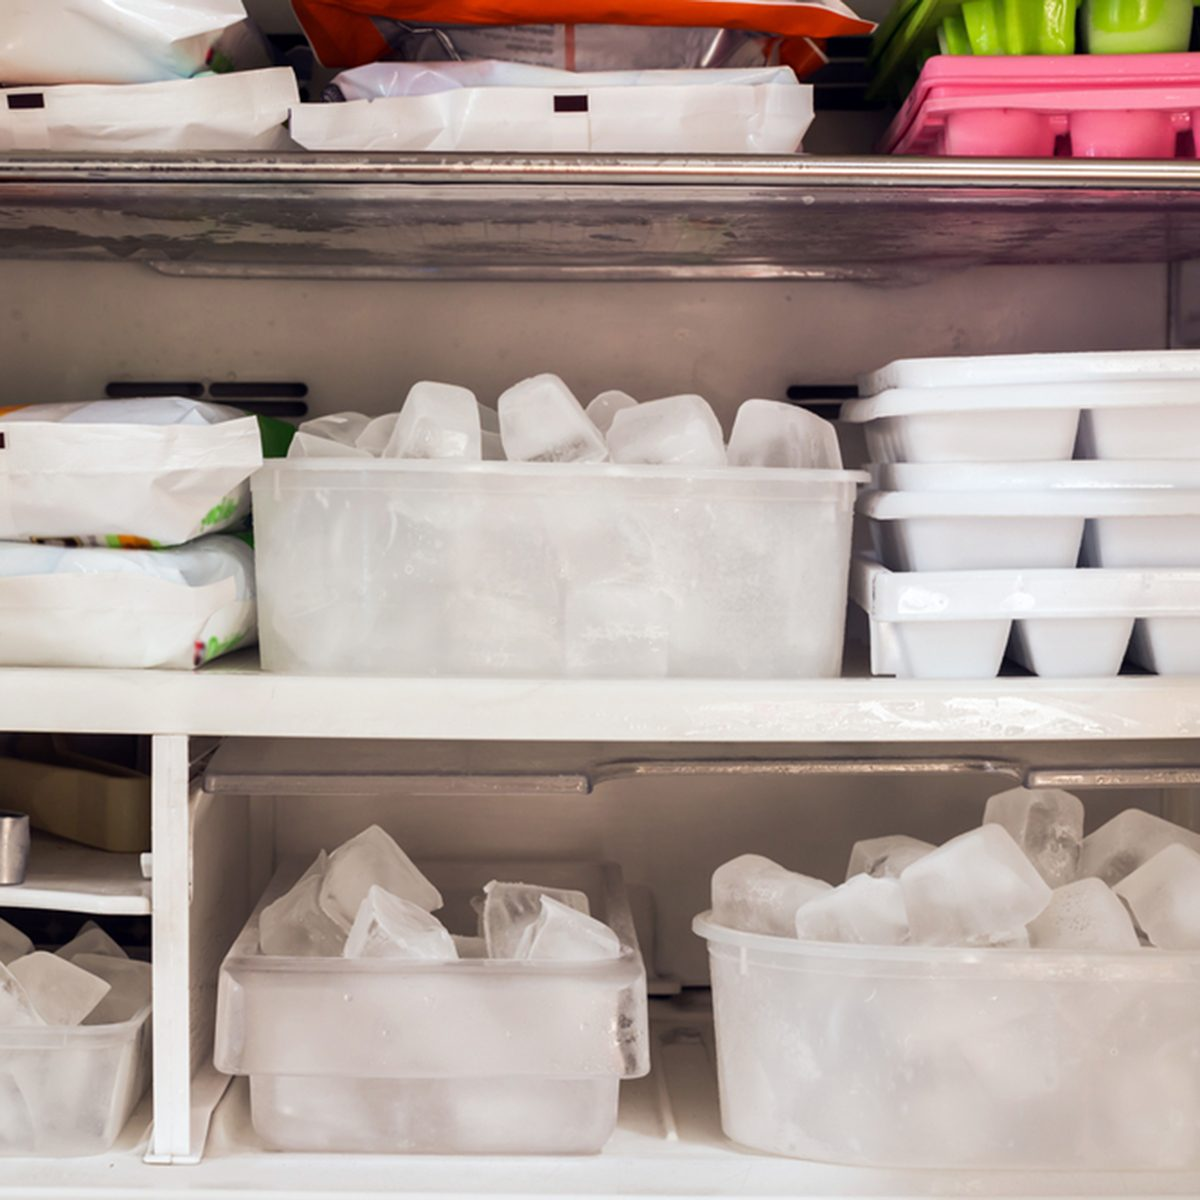 Freezer full of ice cubes and frozen food